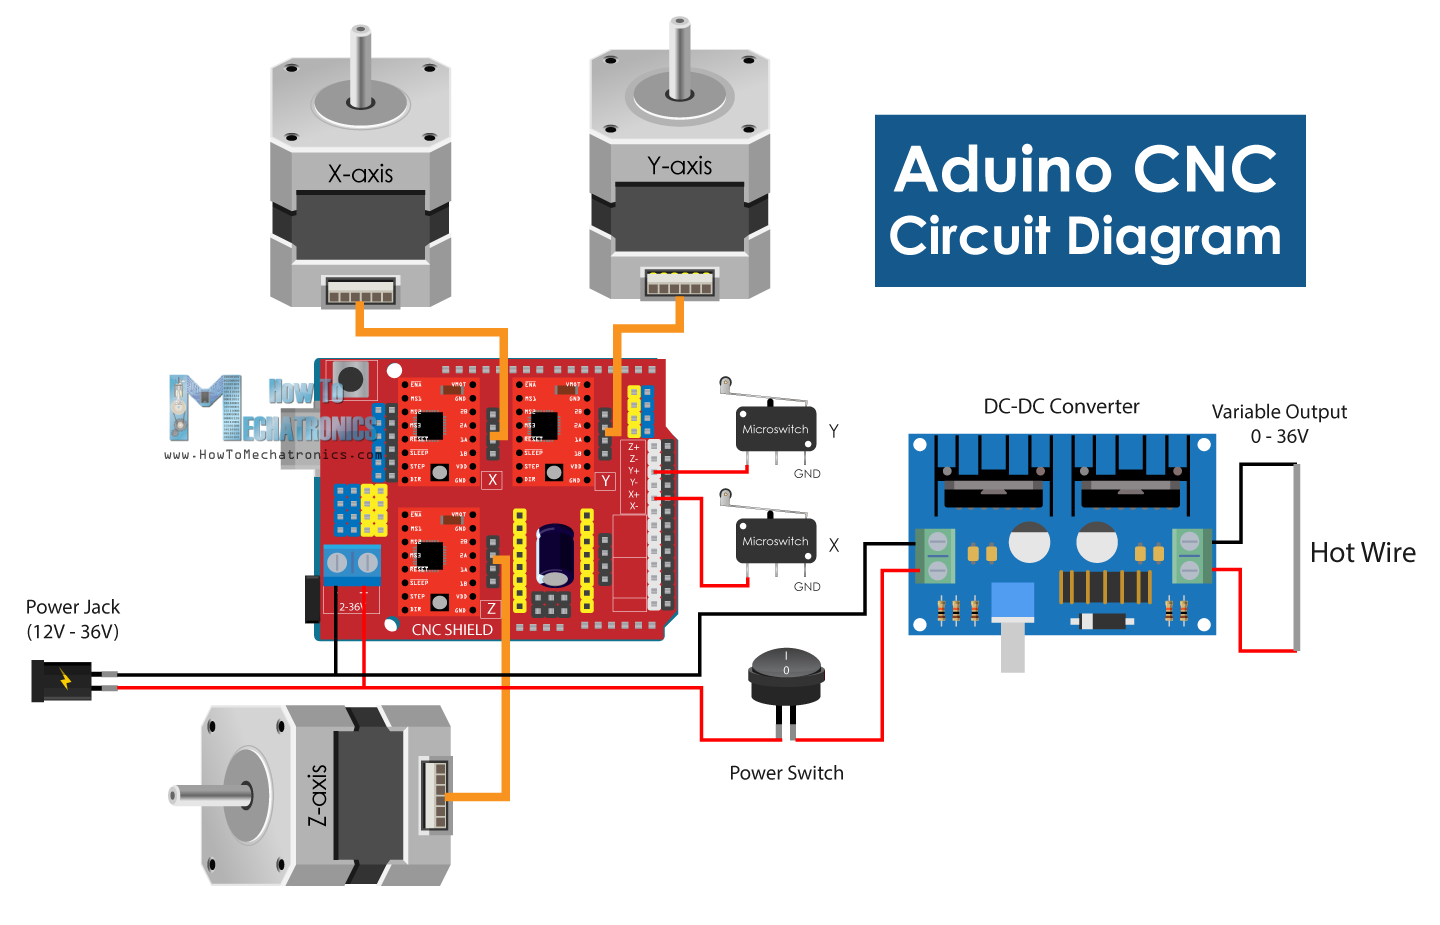 Arduino CNC Machine Circuit Diagram - Electronics components